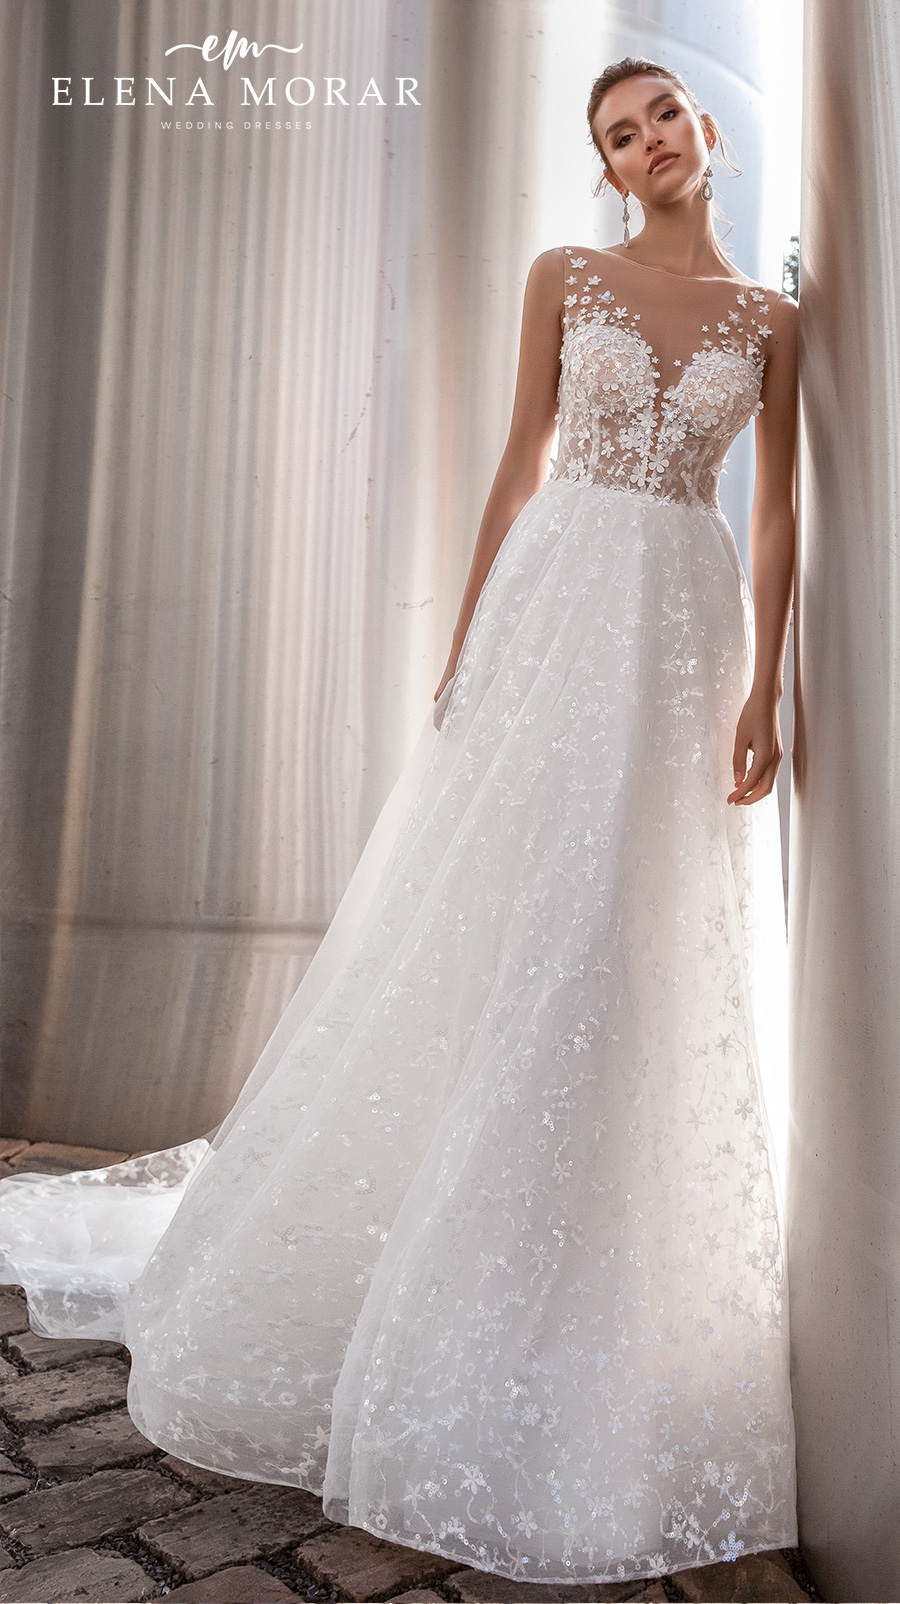 elena morar 2021 rotterdam bridal sleeveless illusion bateau v neck heavily embellished bodice romantic a line wedding dress sheer lace back chapel train (rm016) mv